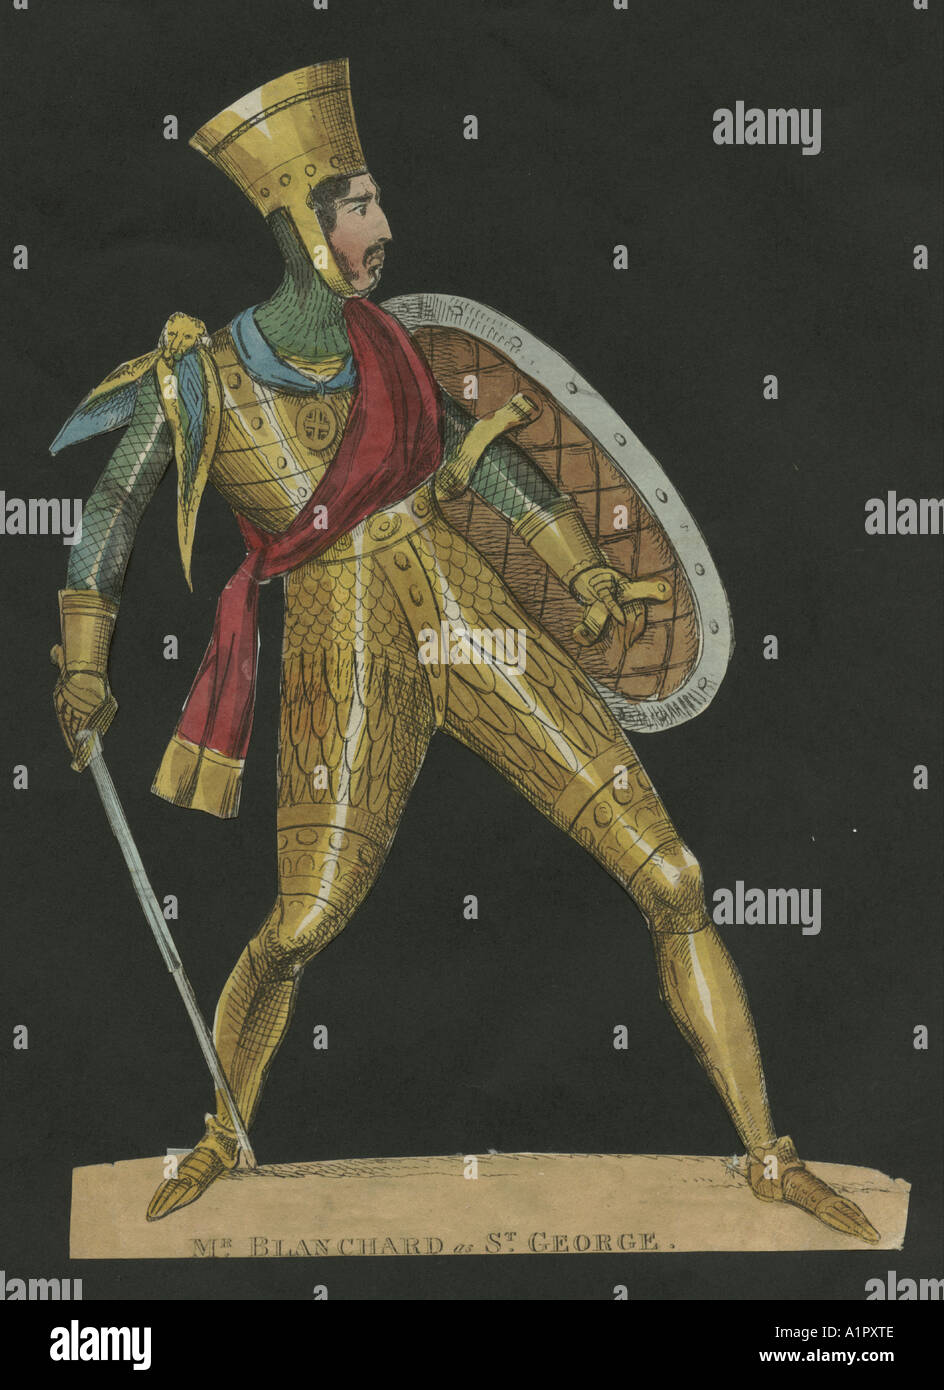 Theatrical portrait of Mr Blanchard as St. George circa 1830 - Stock Image